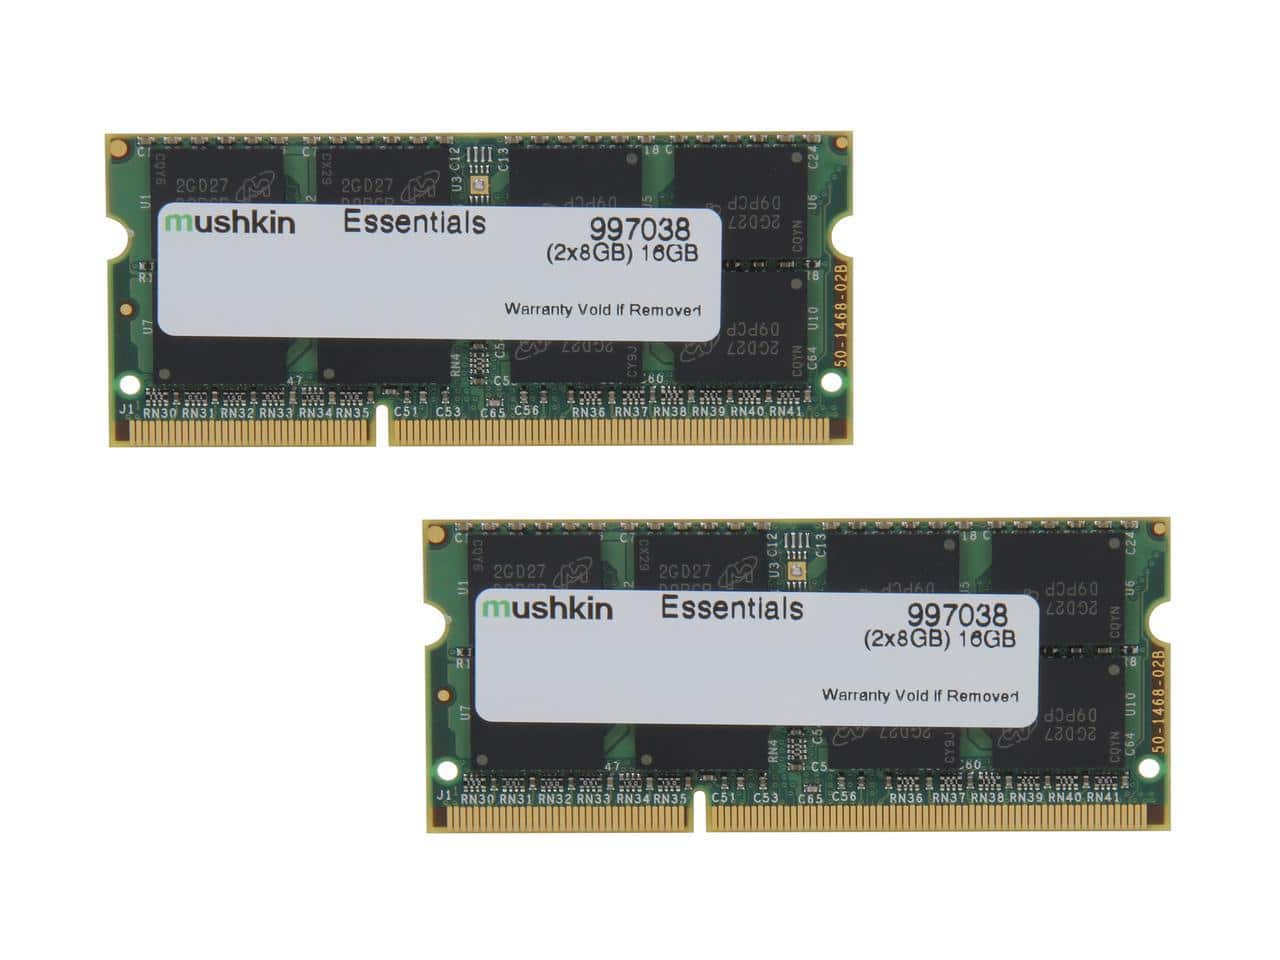 16GB Mushkin Enhanced Essentials DDR3 1600MHz Laptop Memory Kit  $53 + Free Shipping